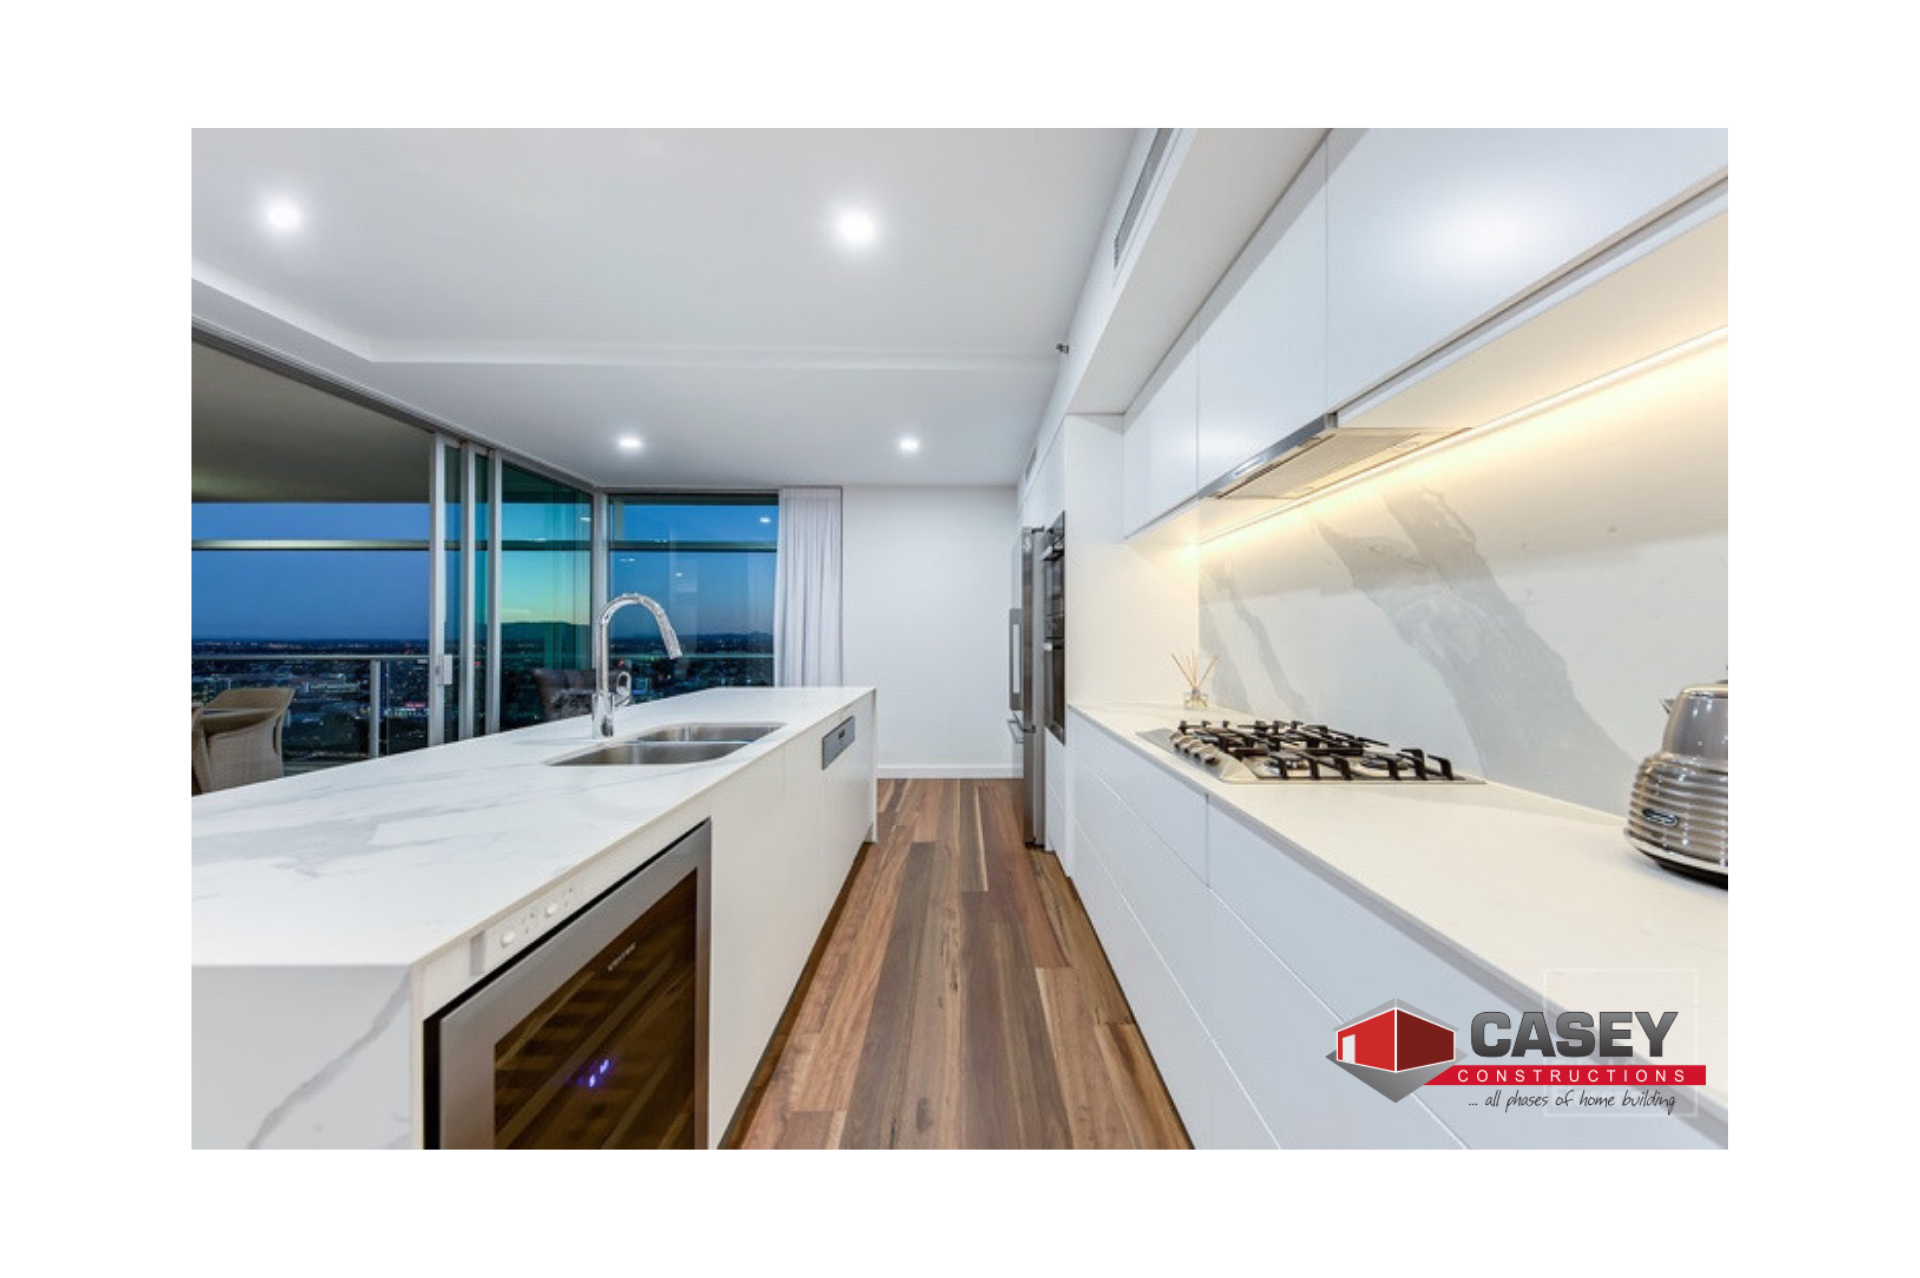 A Penthouse Renovation - A complete renovation of a inner city penthouse in the heart of Brisbane's CBD…..